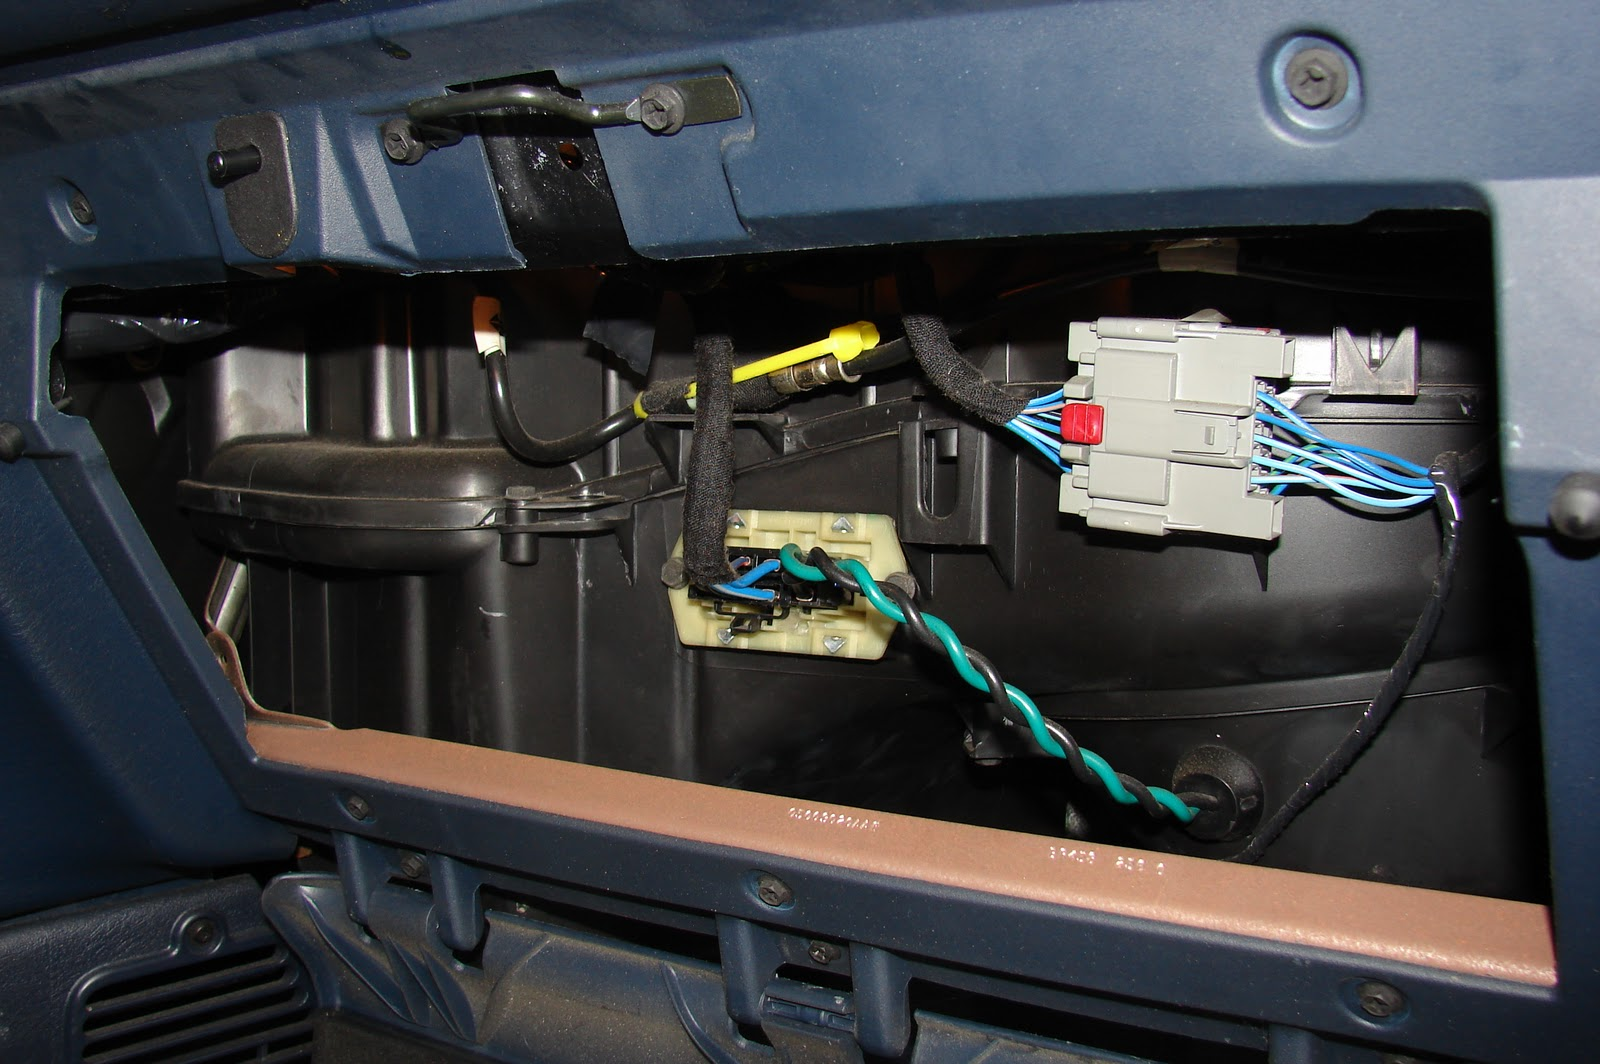 Fuse Box 01 Dodge Caravan Wiring Library 2001 Diagram Photos For Help Fan Only Works On High